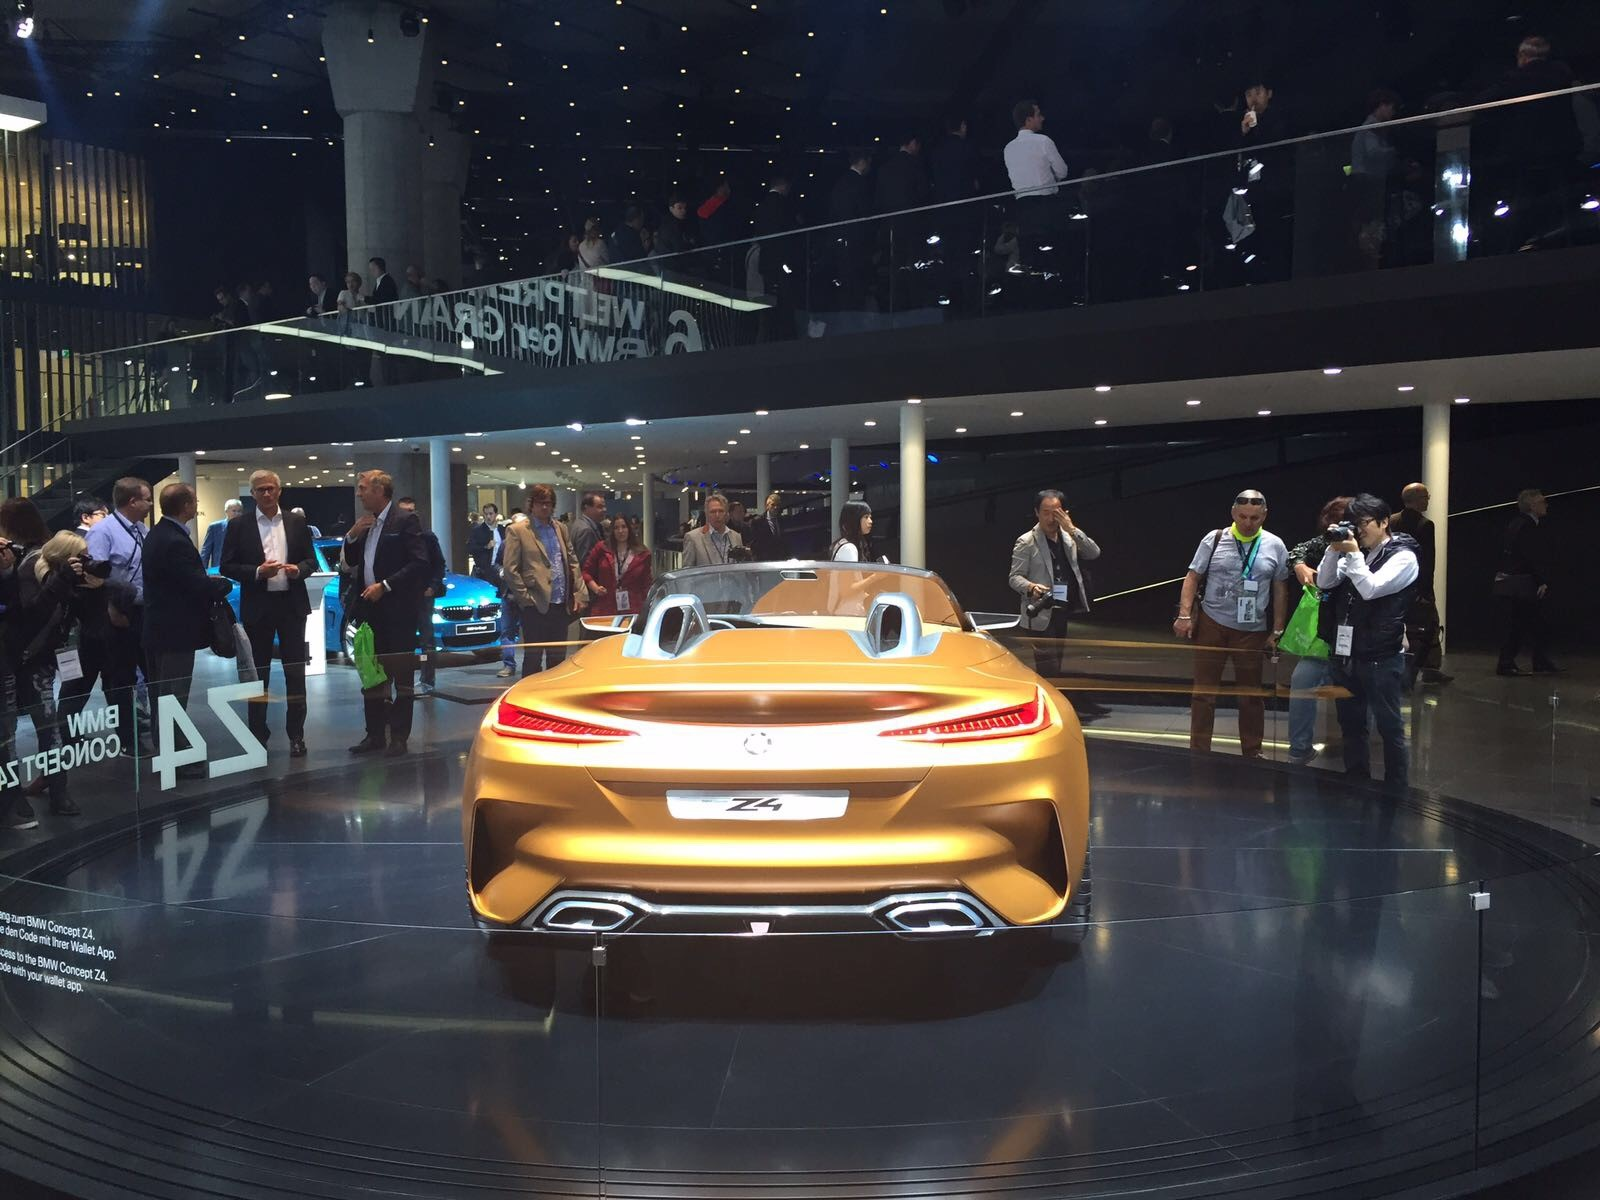 The backside of the BMW Z4 Concept, built on a platform co-developed with Toyota.